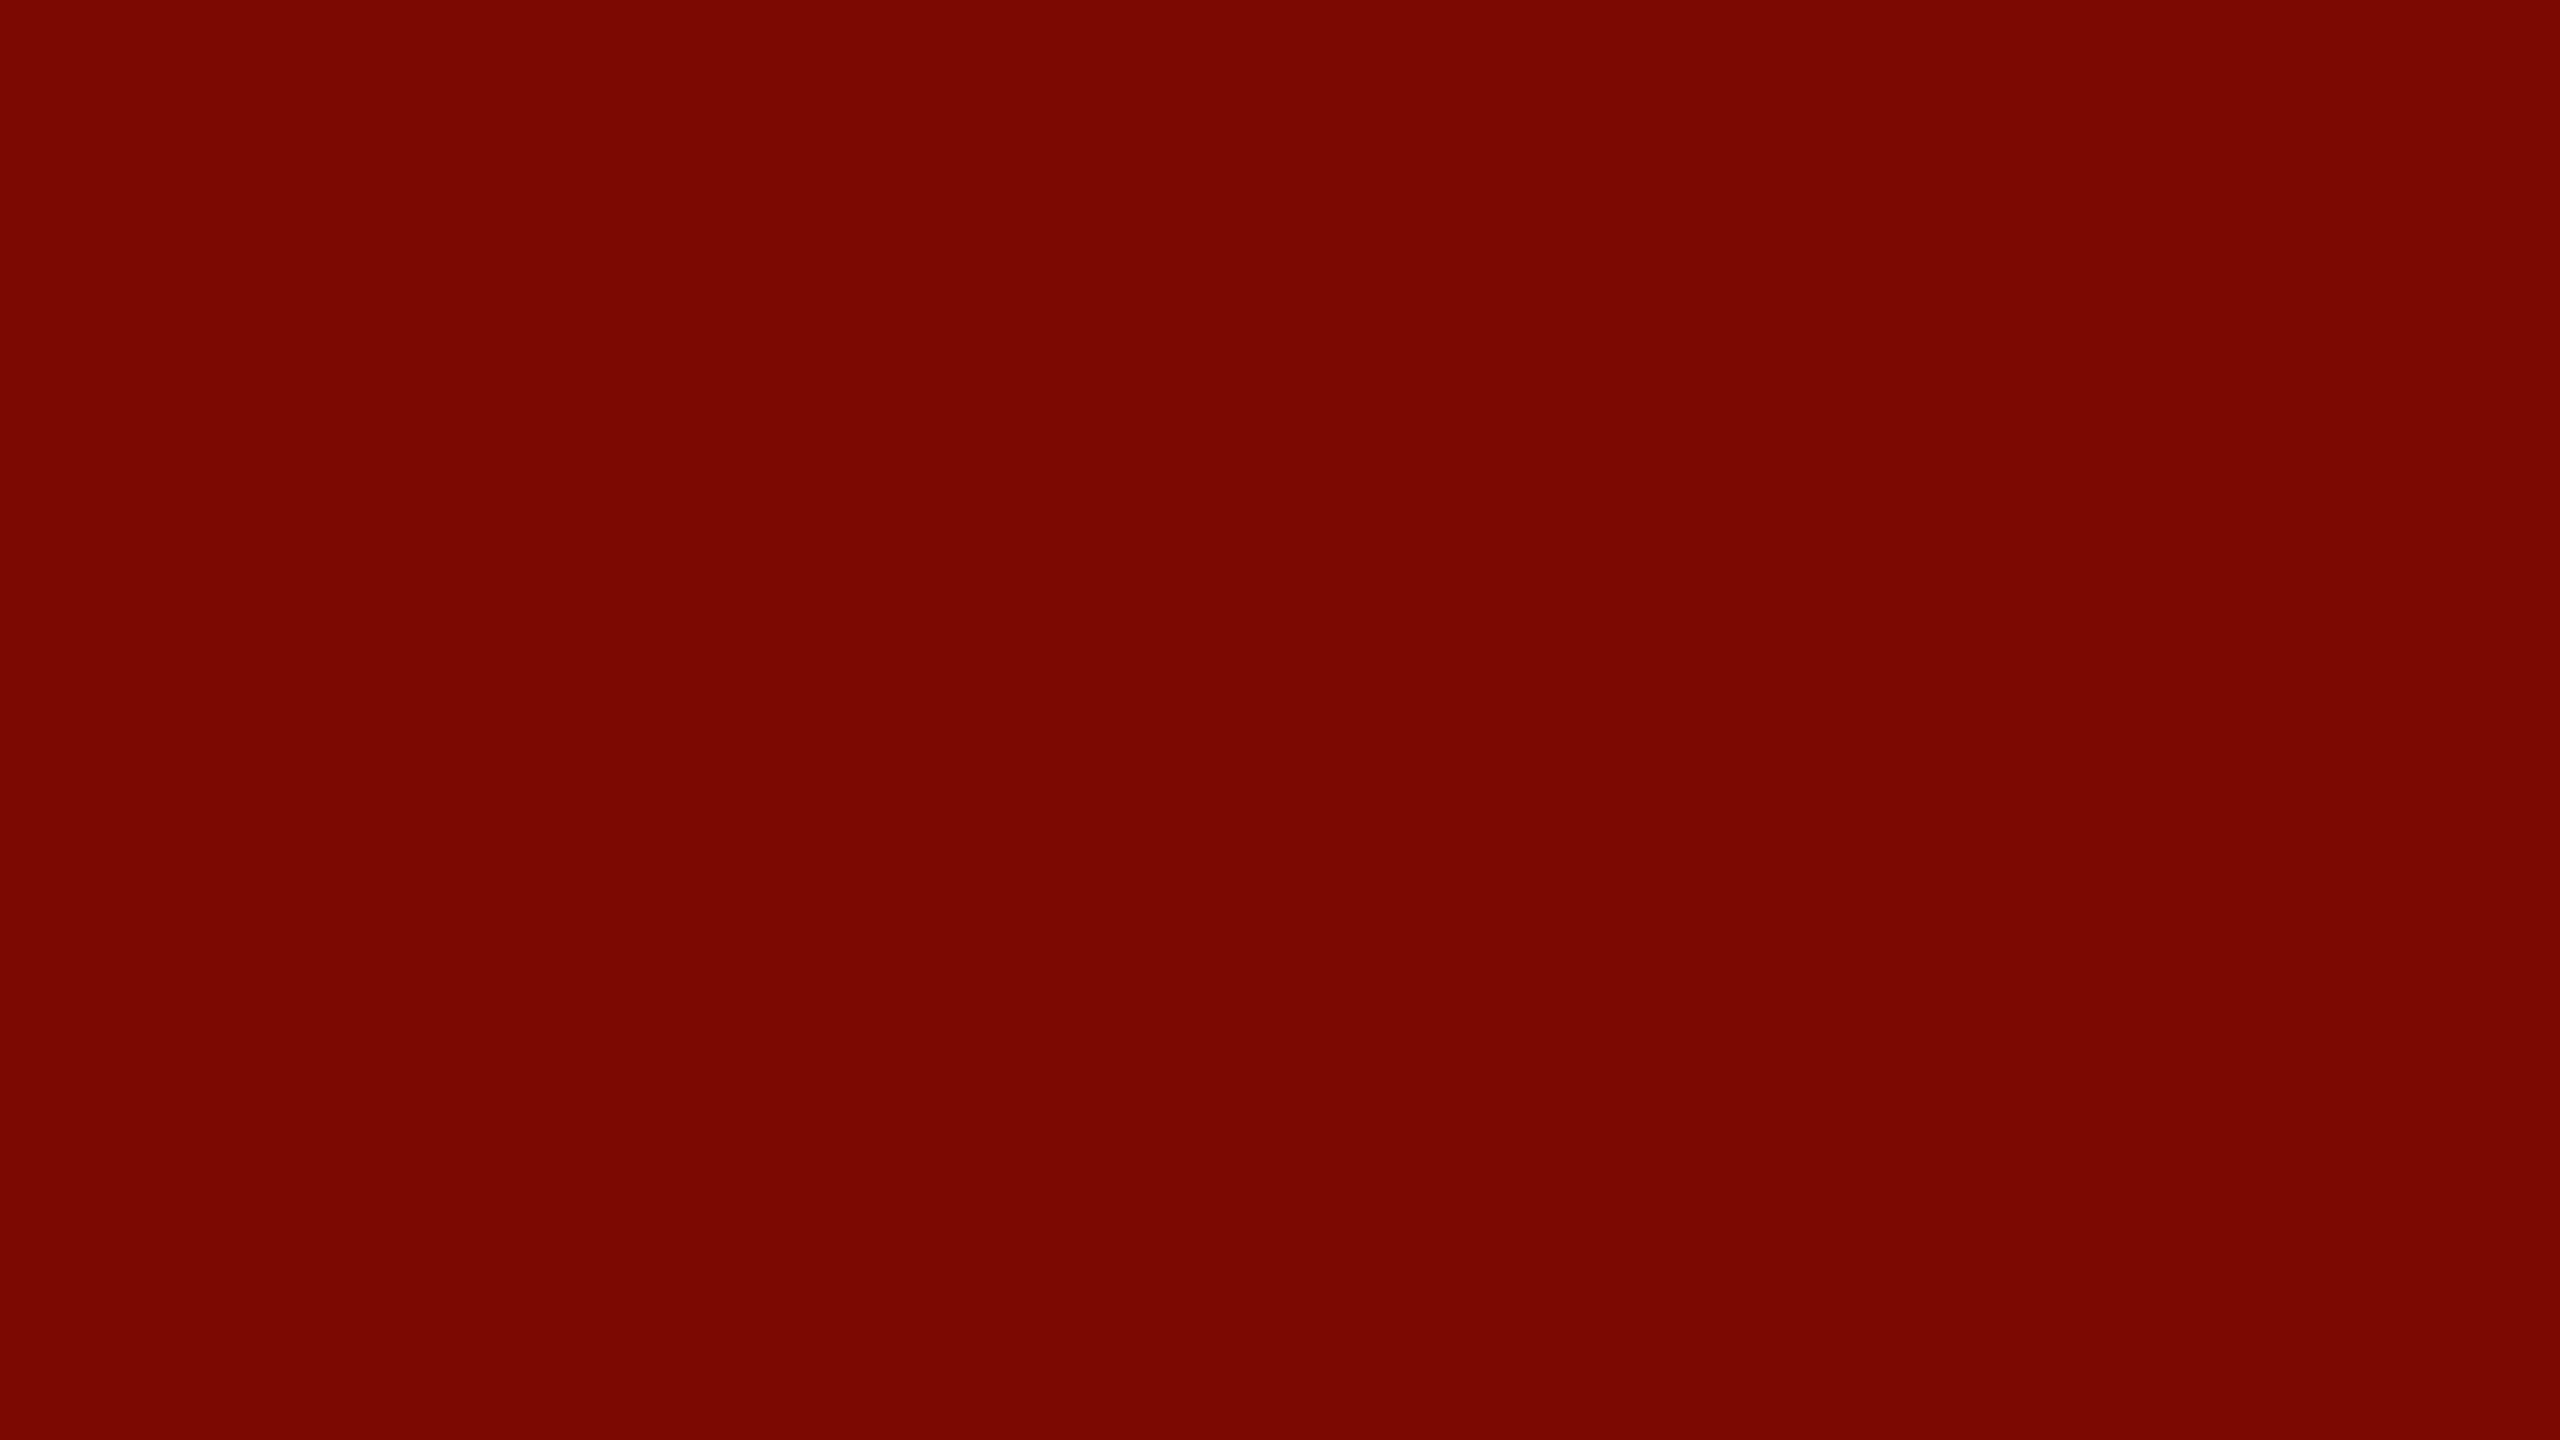 2560x1440 Barn Red Solid Color Background